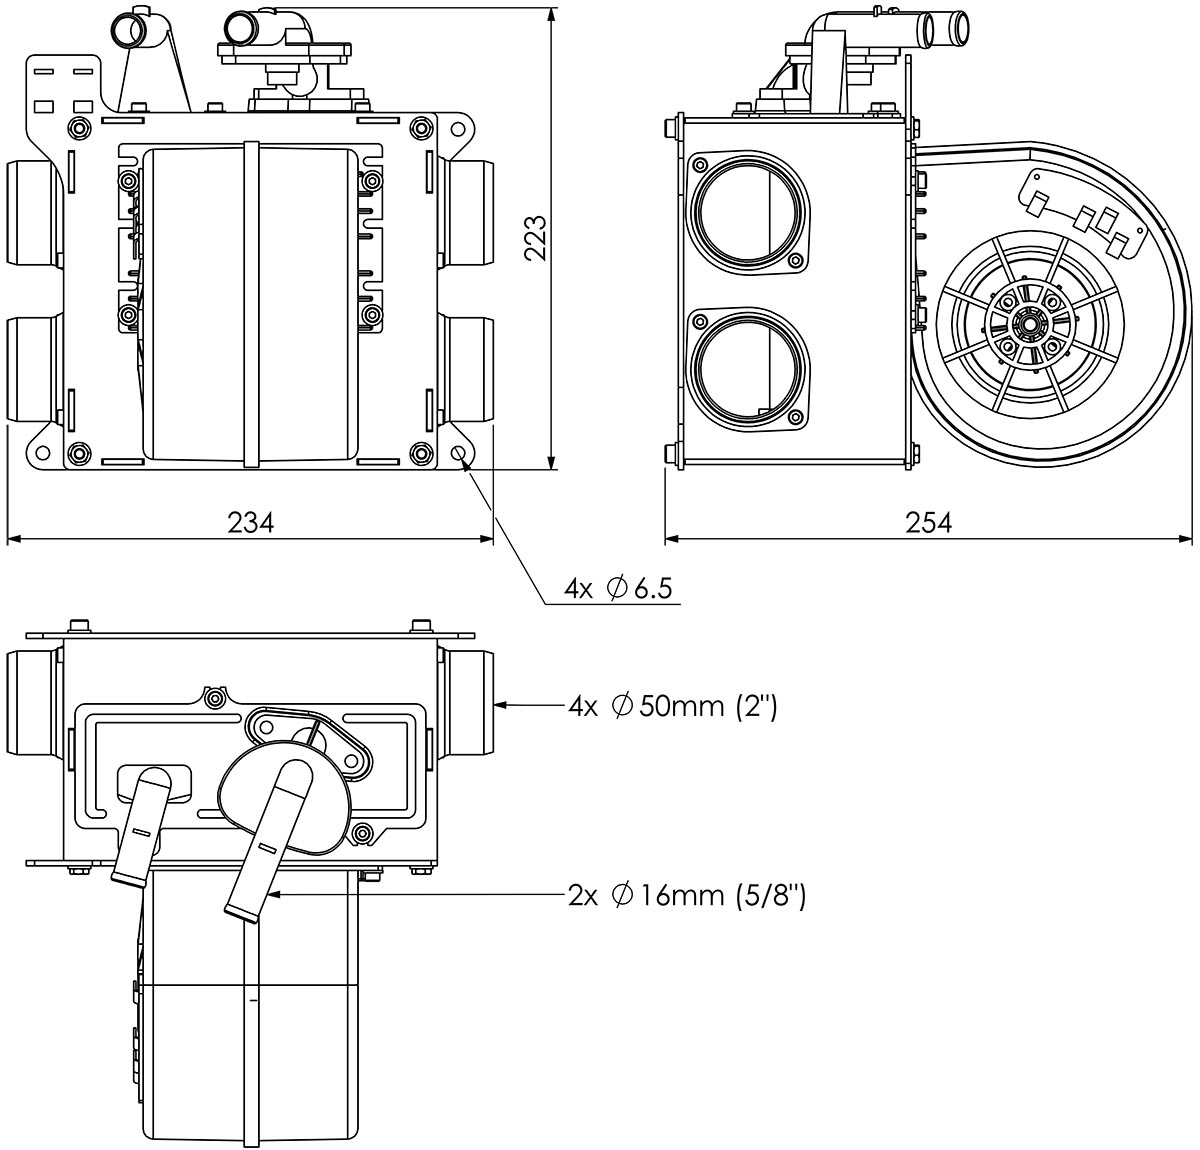 5kw Midi Heater Side Vents Dimensions